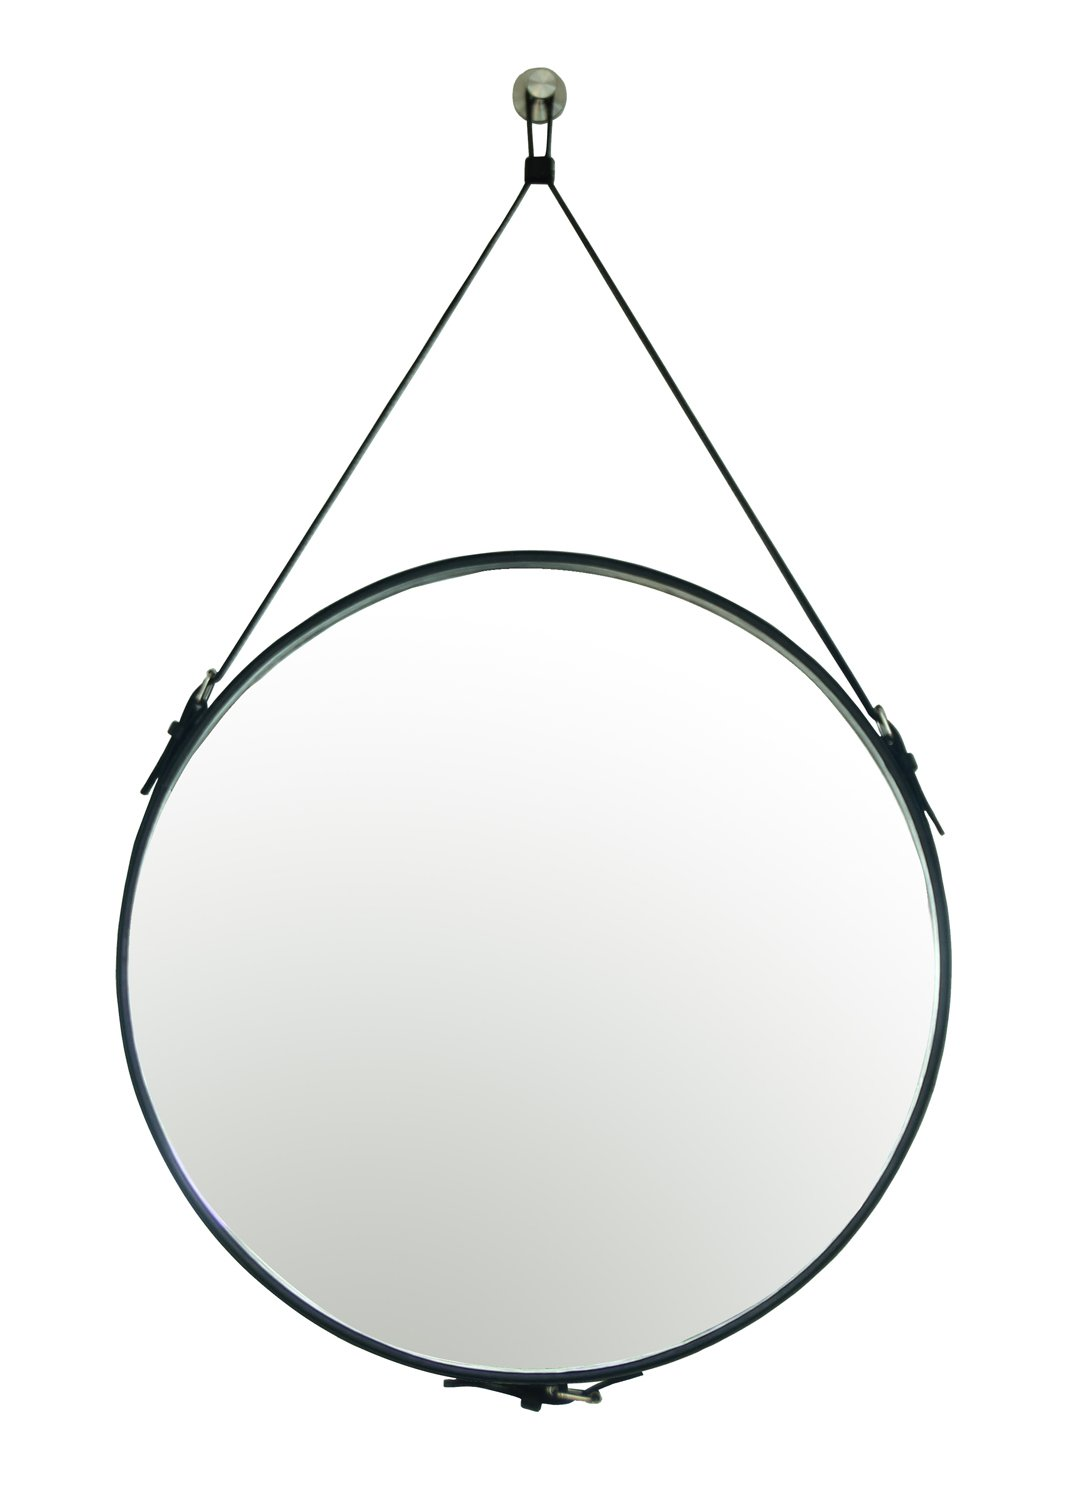 Ms.Box PU Leather Round Wall Mirror Decorative Mirror with Hanging Strap Silver Hardware Hooker/Hanger, Diameter 23.6 inch, Black-L